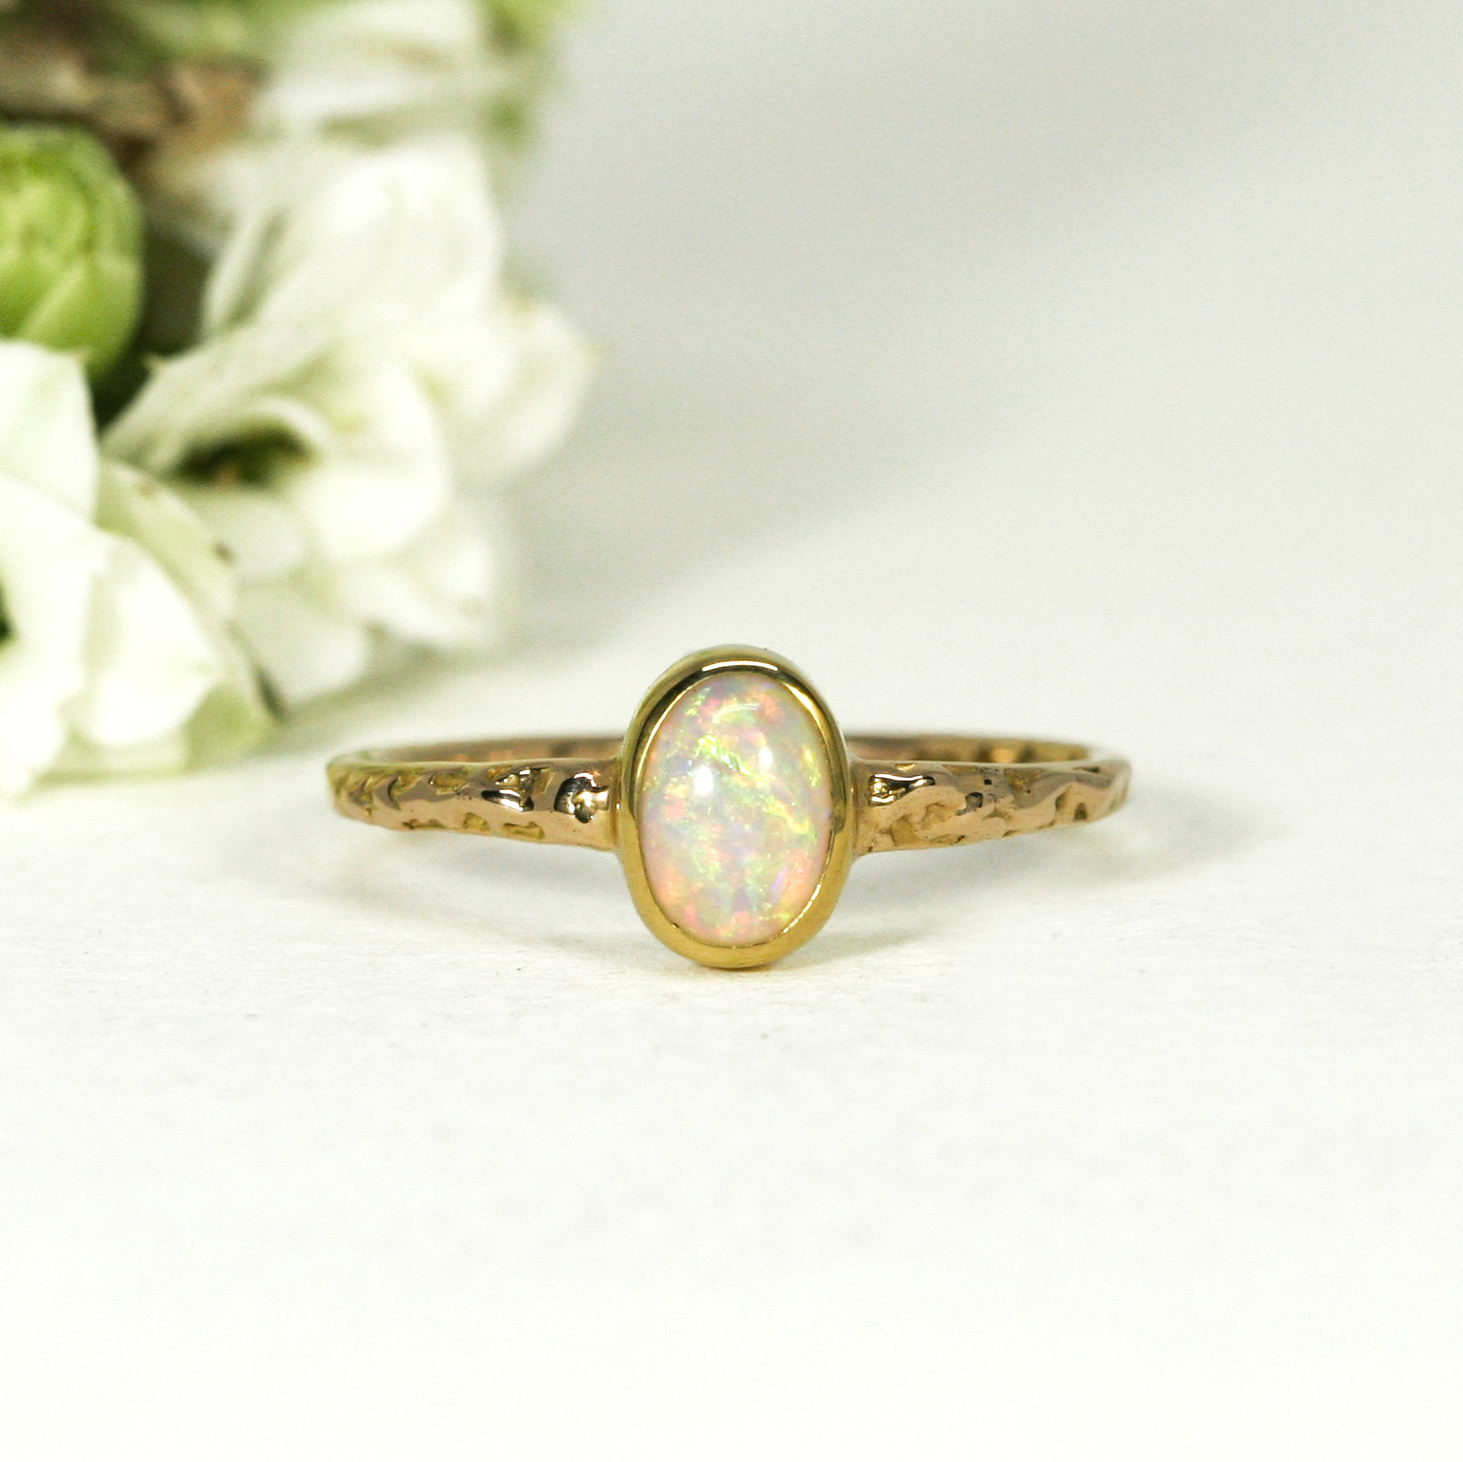 yellow-gold-18ct-ring-opal-Eternal-Sunshine-john-miller-design